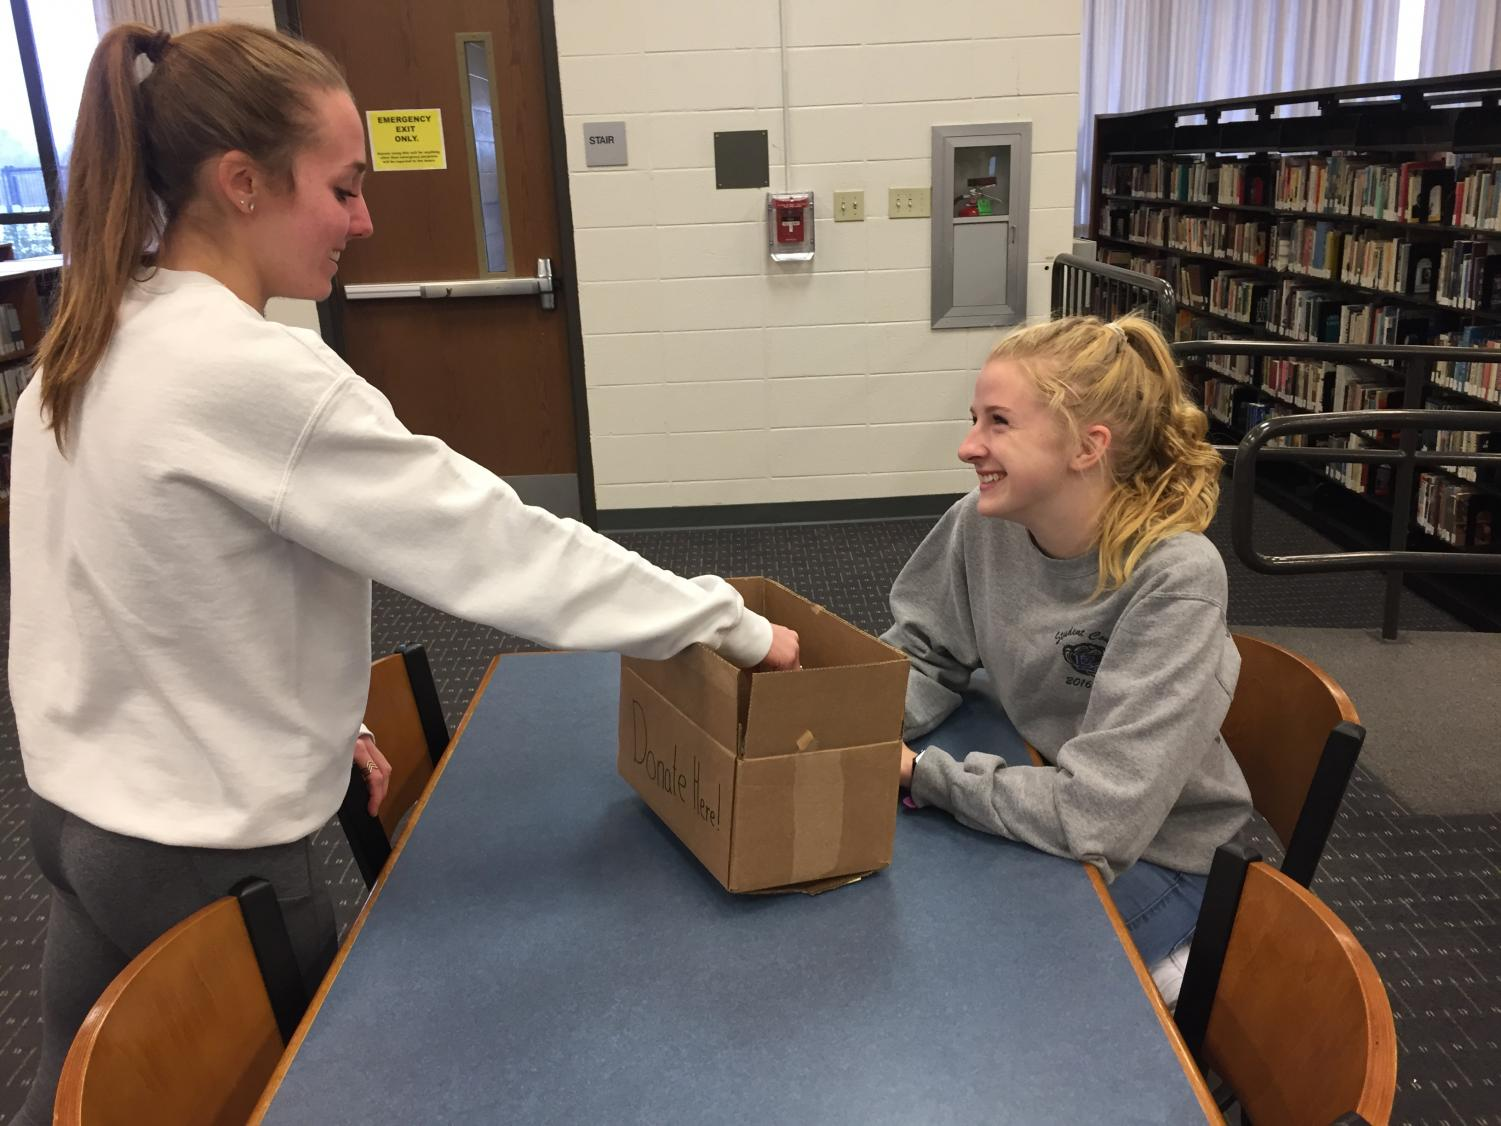 A student hands money to Jillian Baffa, senior (right), to donate to the Keep Swimming Foundation. The foundation is the chosen charity for Charity Bash this year, and clubs are already raising money in a variety of ways.